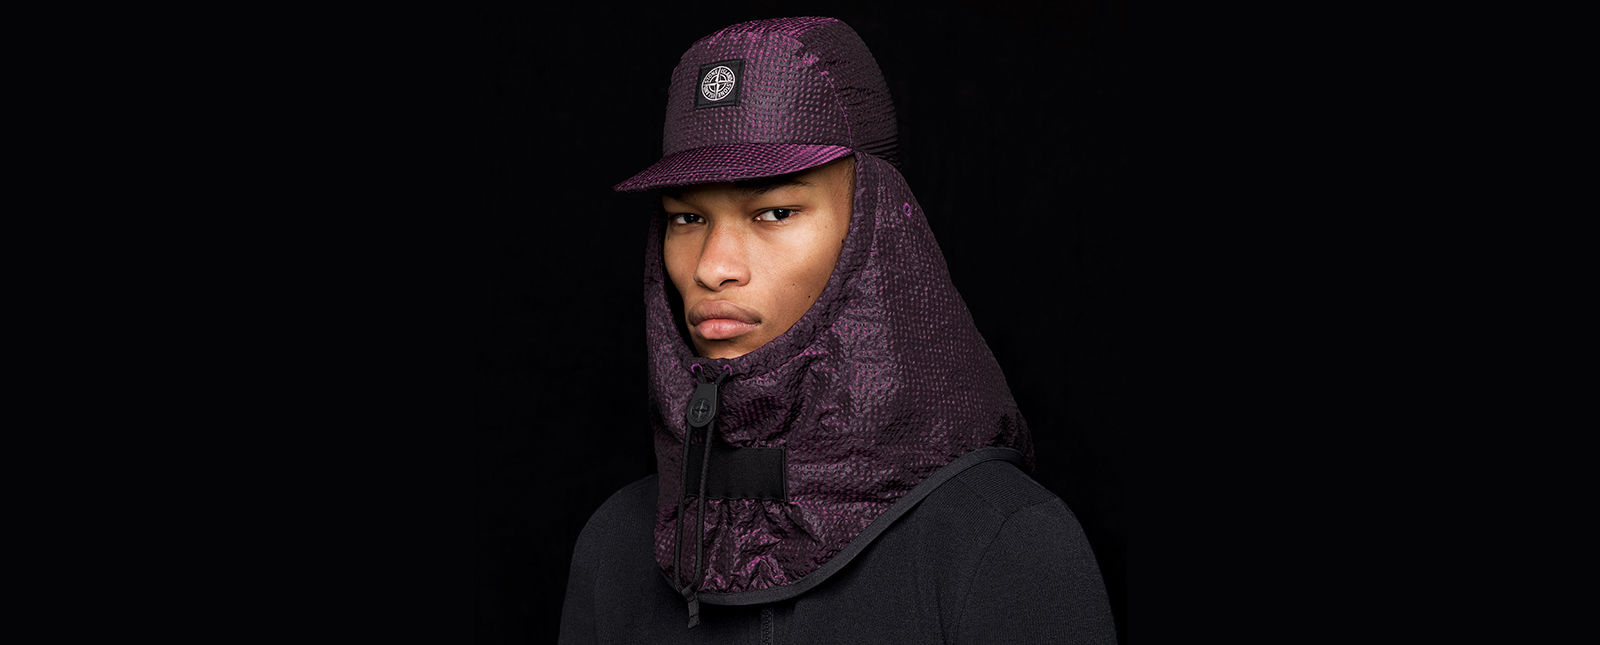 Model wearing a purple cap with neck and back flap with drawstring and the Stone Island patch on the forehead.